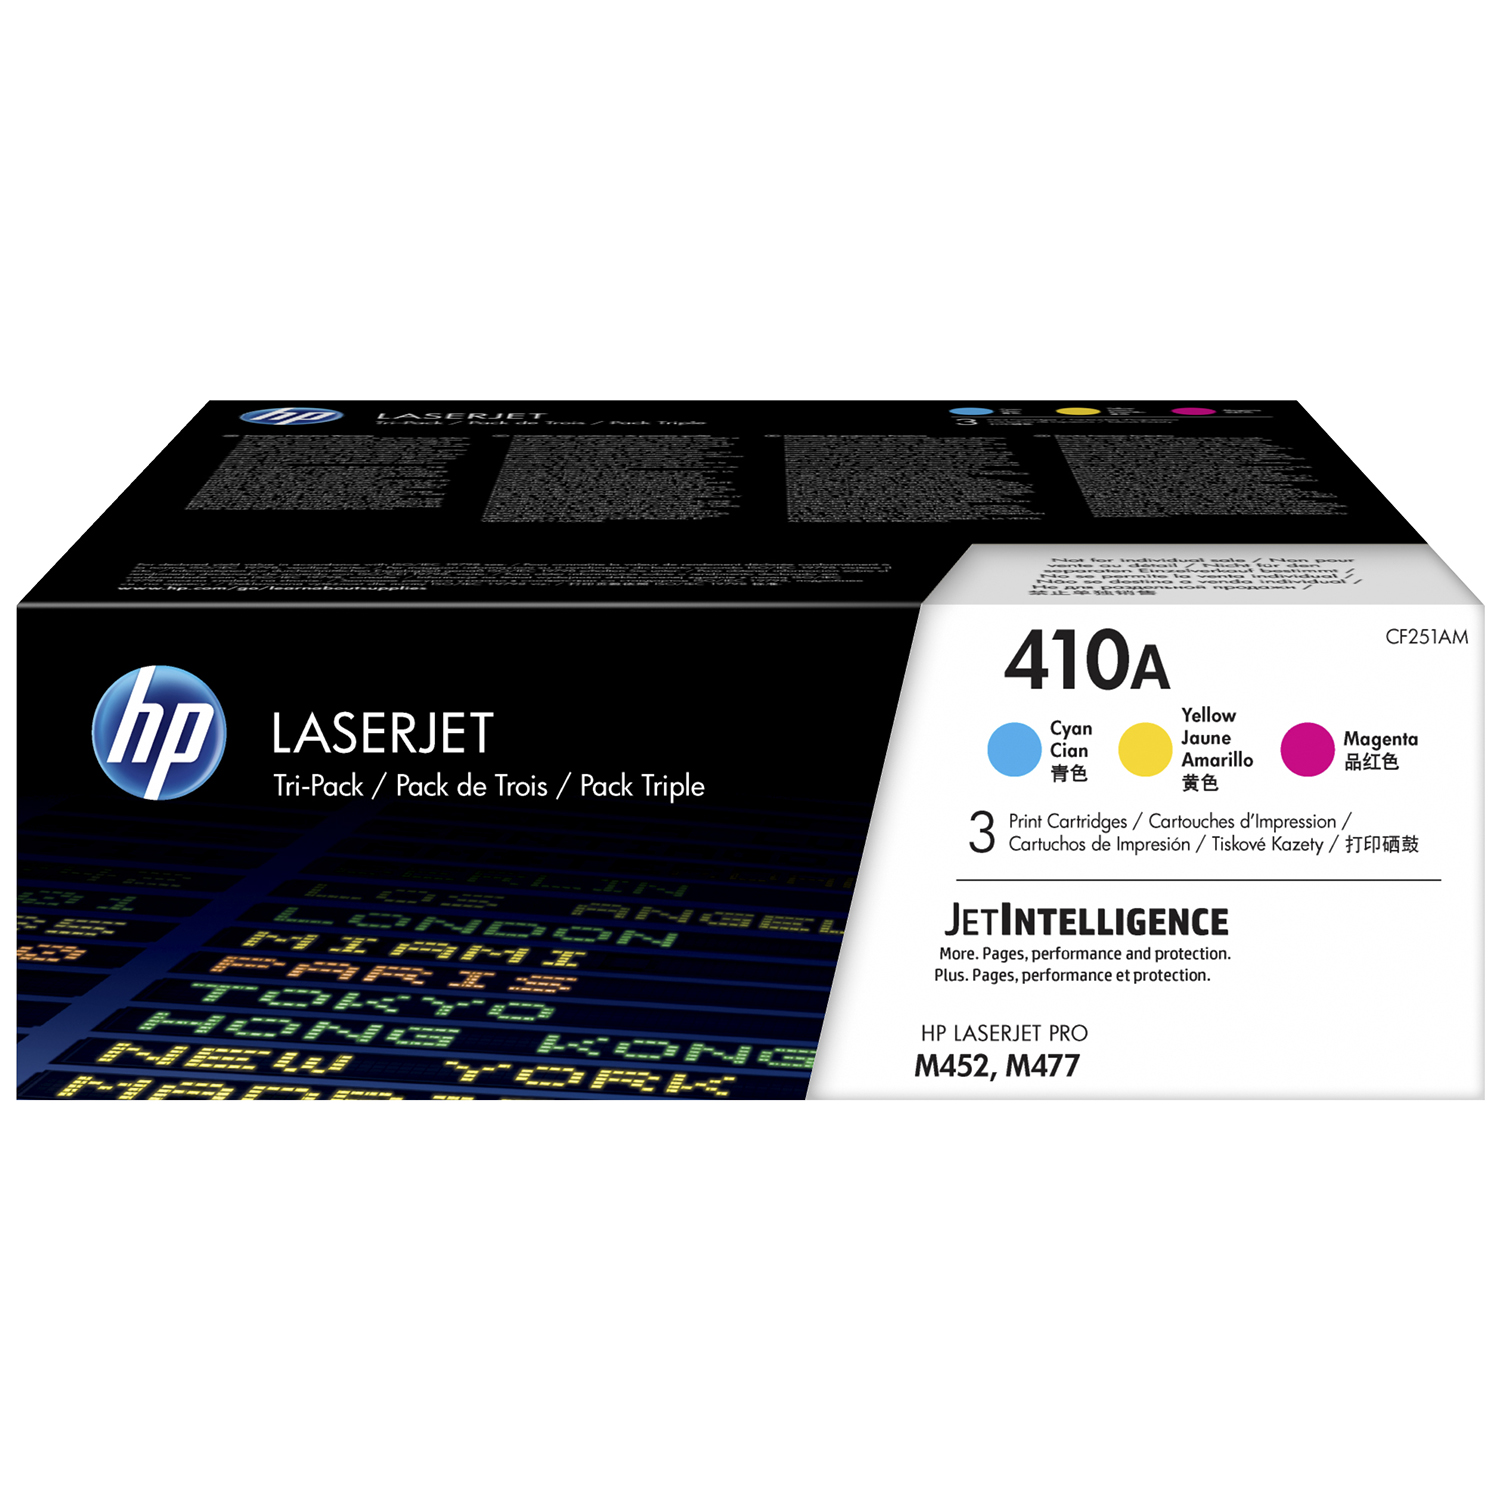 Hp 410a Cf251am Cyan Magenta Yellow Original Laserjet